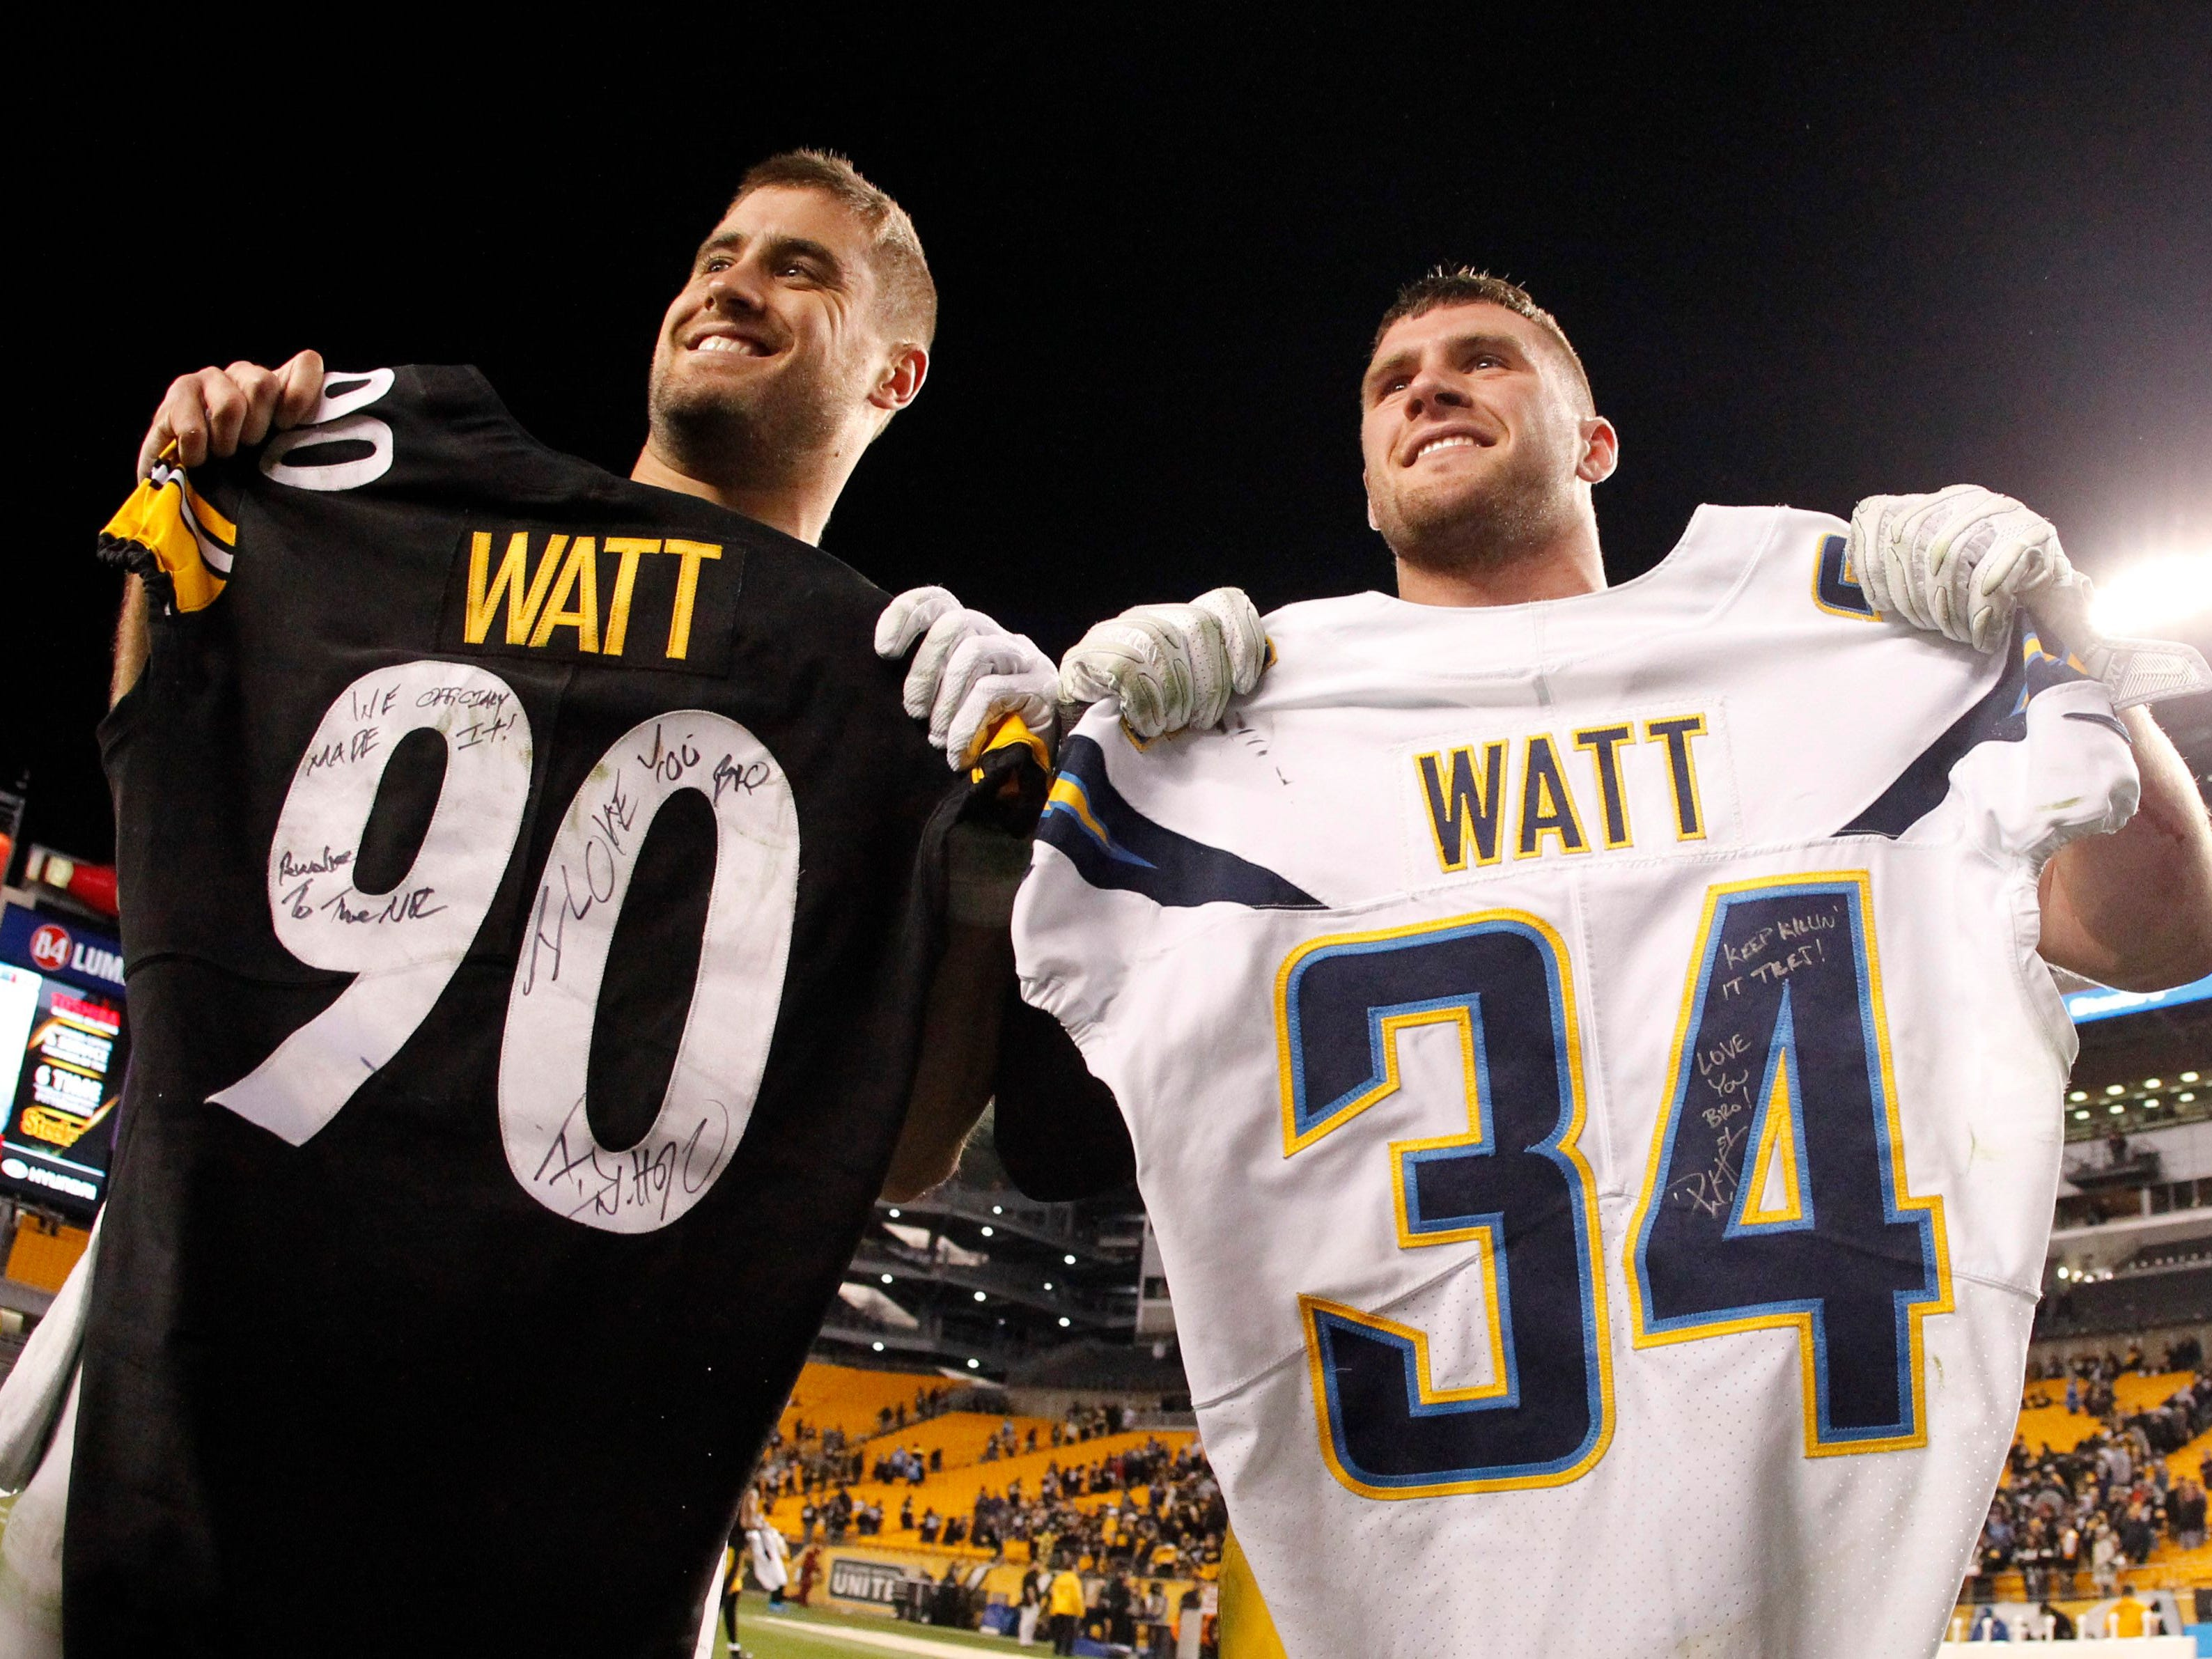 Los Angeles Chargers fullback Derek Watt (left) and Pittsburgh Steelers outside linebacker T.J. Watt exchange jerseys after their game on Dec. 2, 2018, at Heinz Field. The Chargers won 33-30.